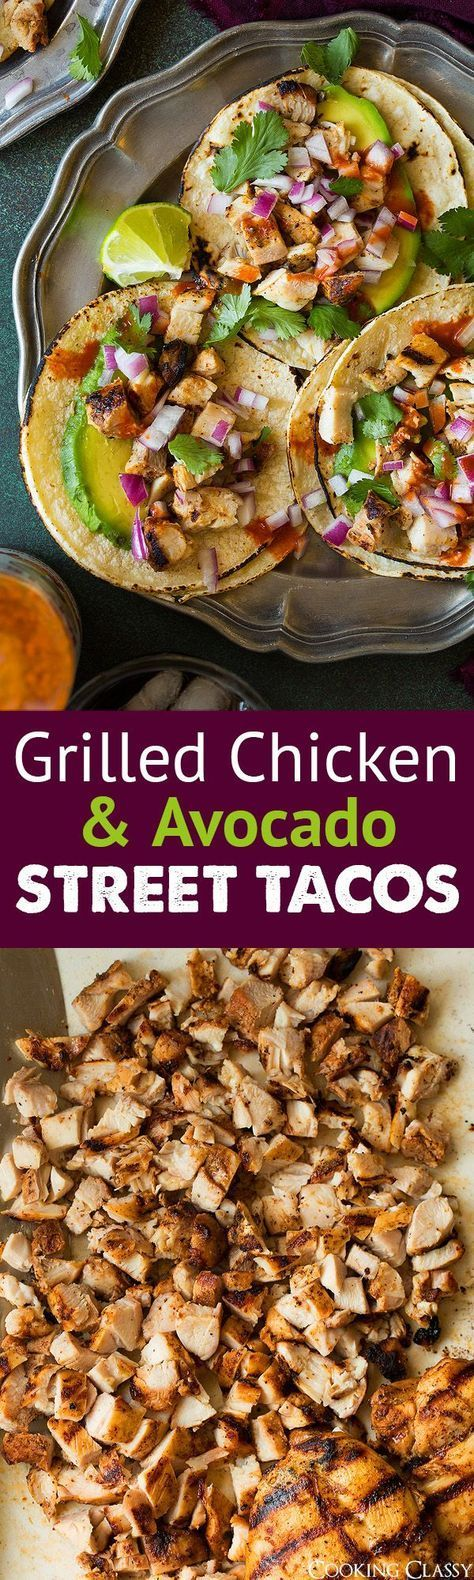 Grilled Chicken and Avocado Street Tacos - Cooking Classy: - sans tortillas (Summer Sandwich Recipes)